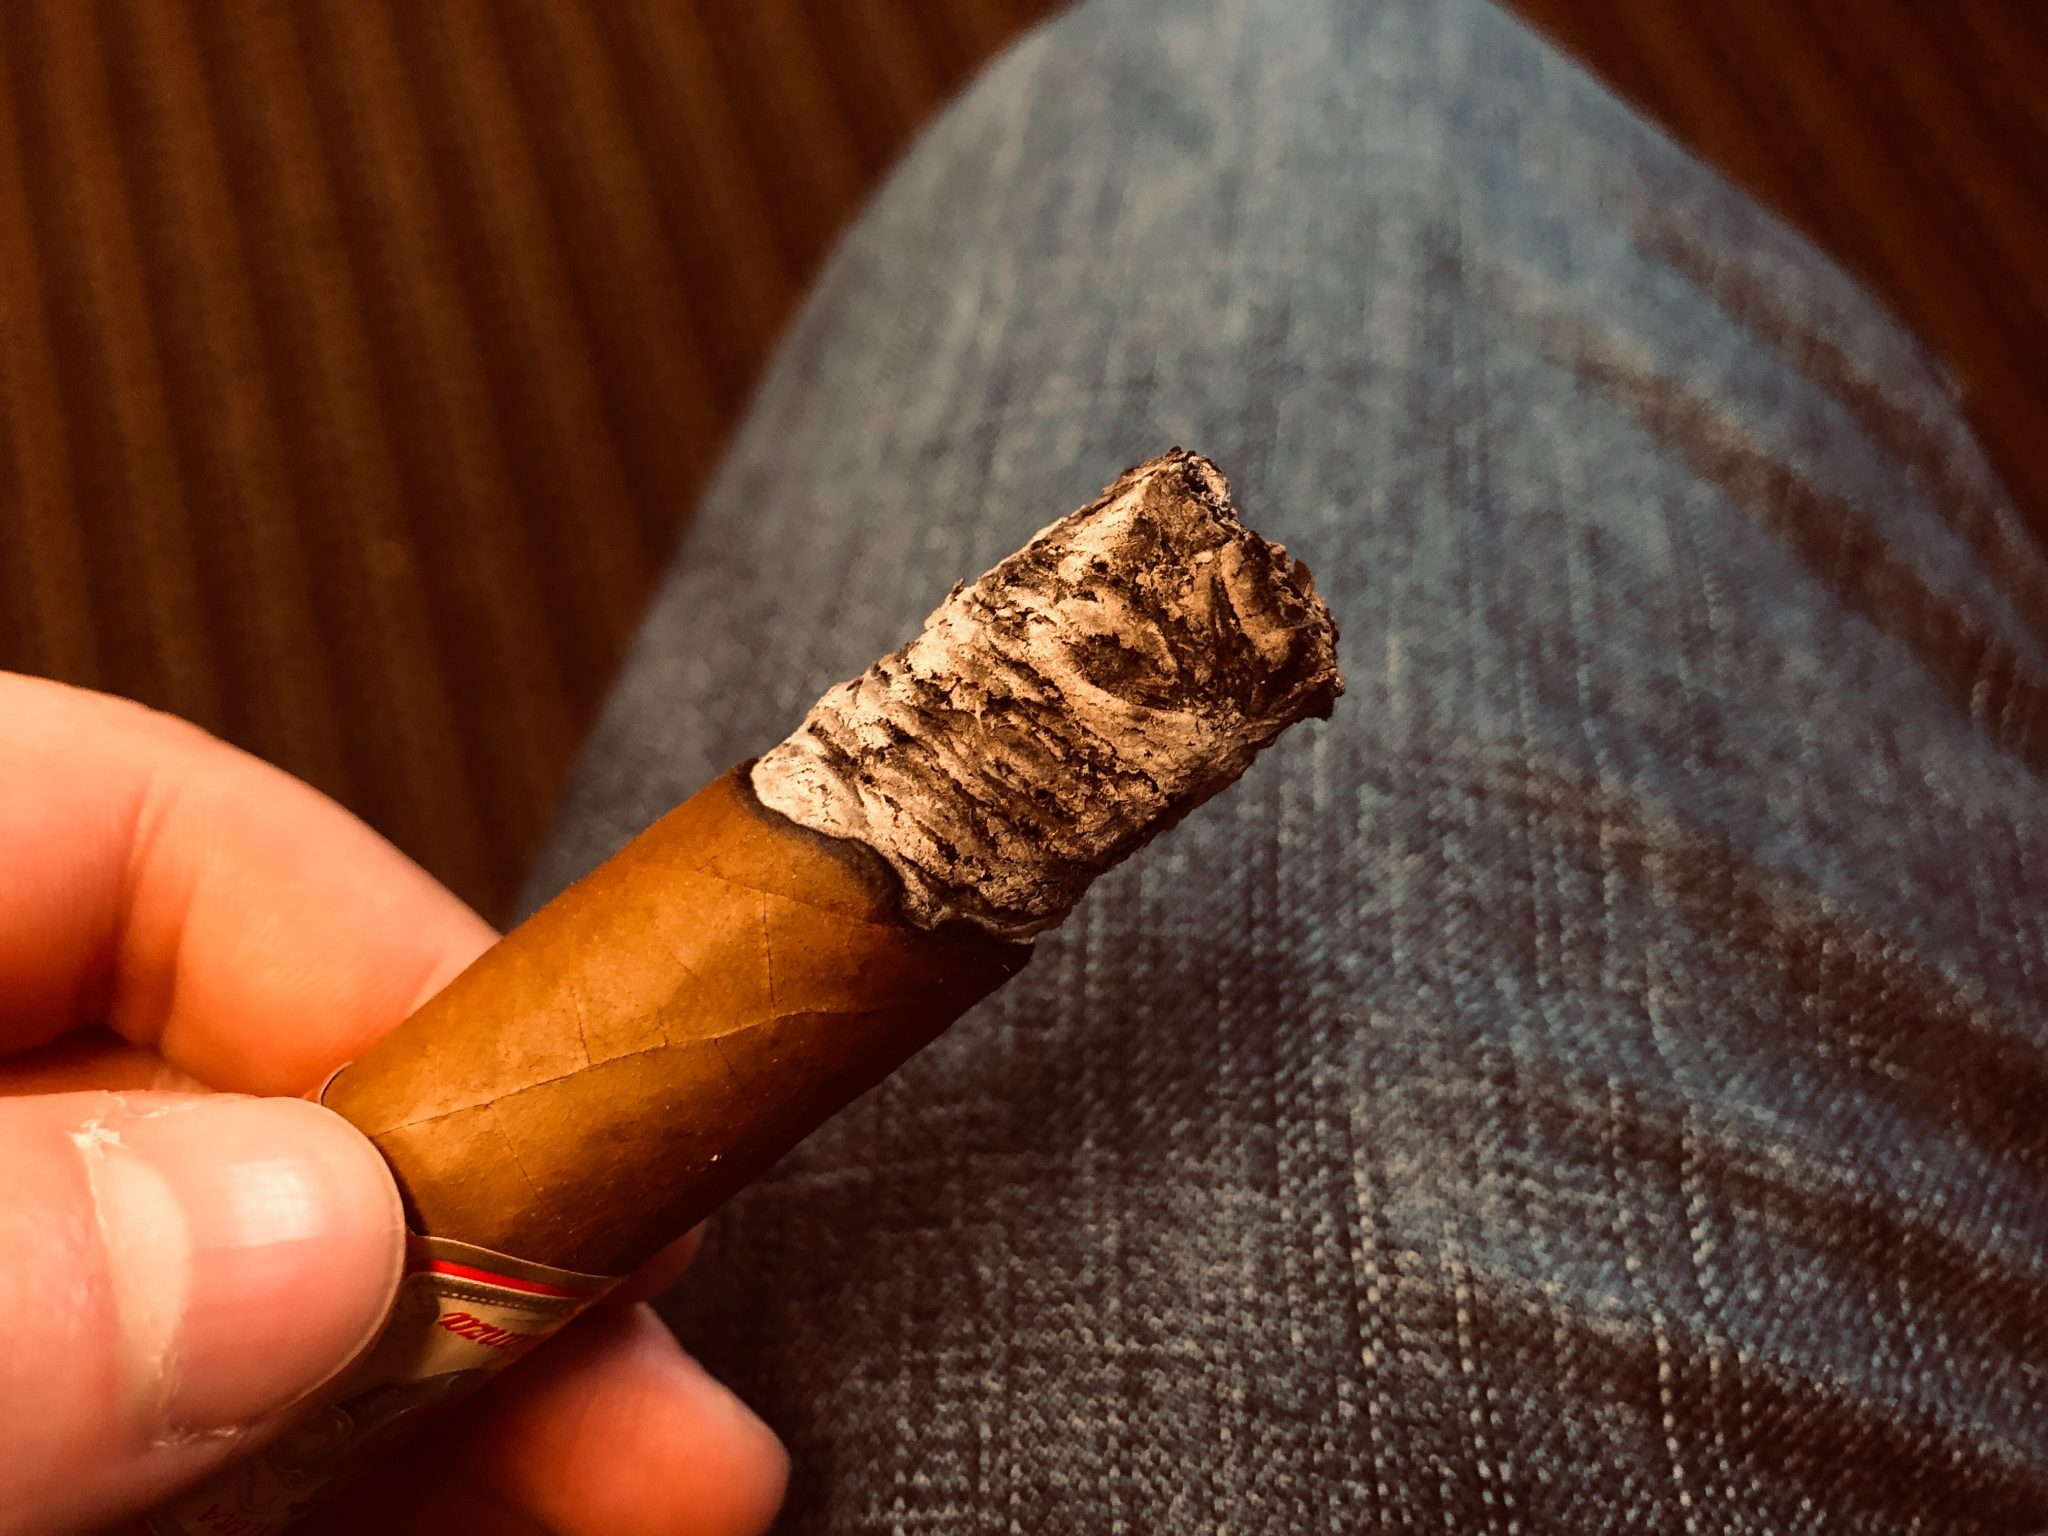 EPC EP Carrillo Cigars Guide EP Carrillo La Alianza Rosado Cigar Review by Jared Gulick 2